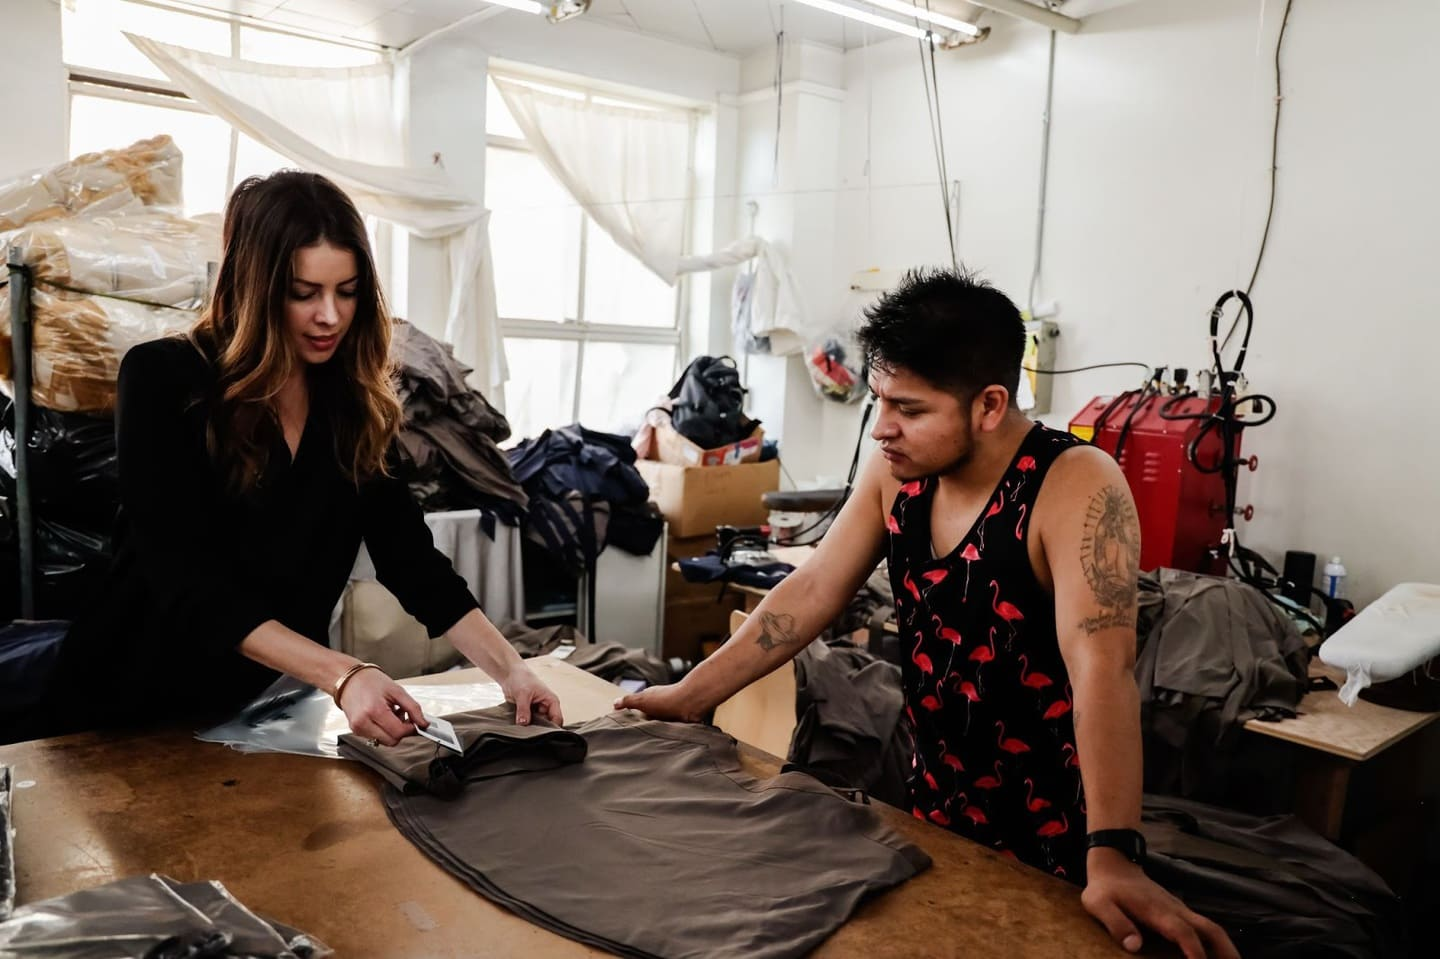 Two clothing manufacturers examinigin fabric and starting a clothing line